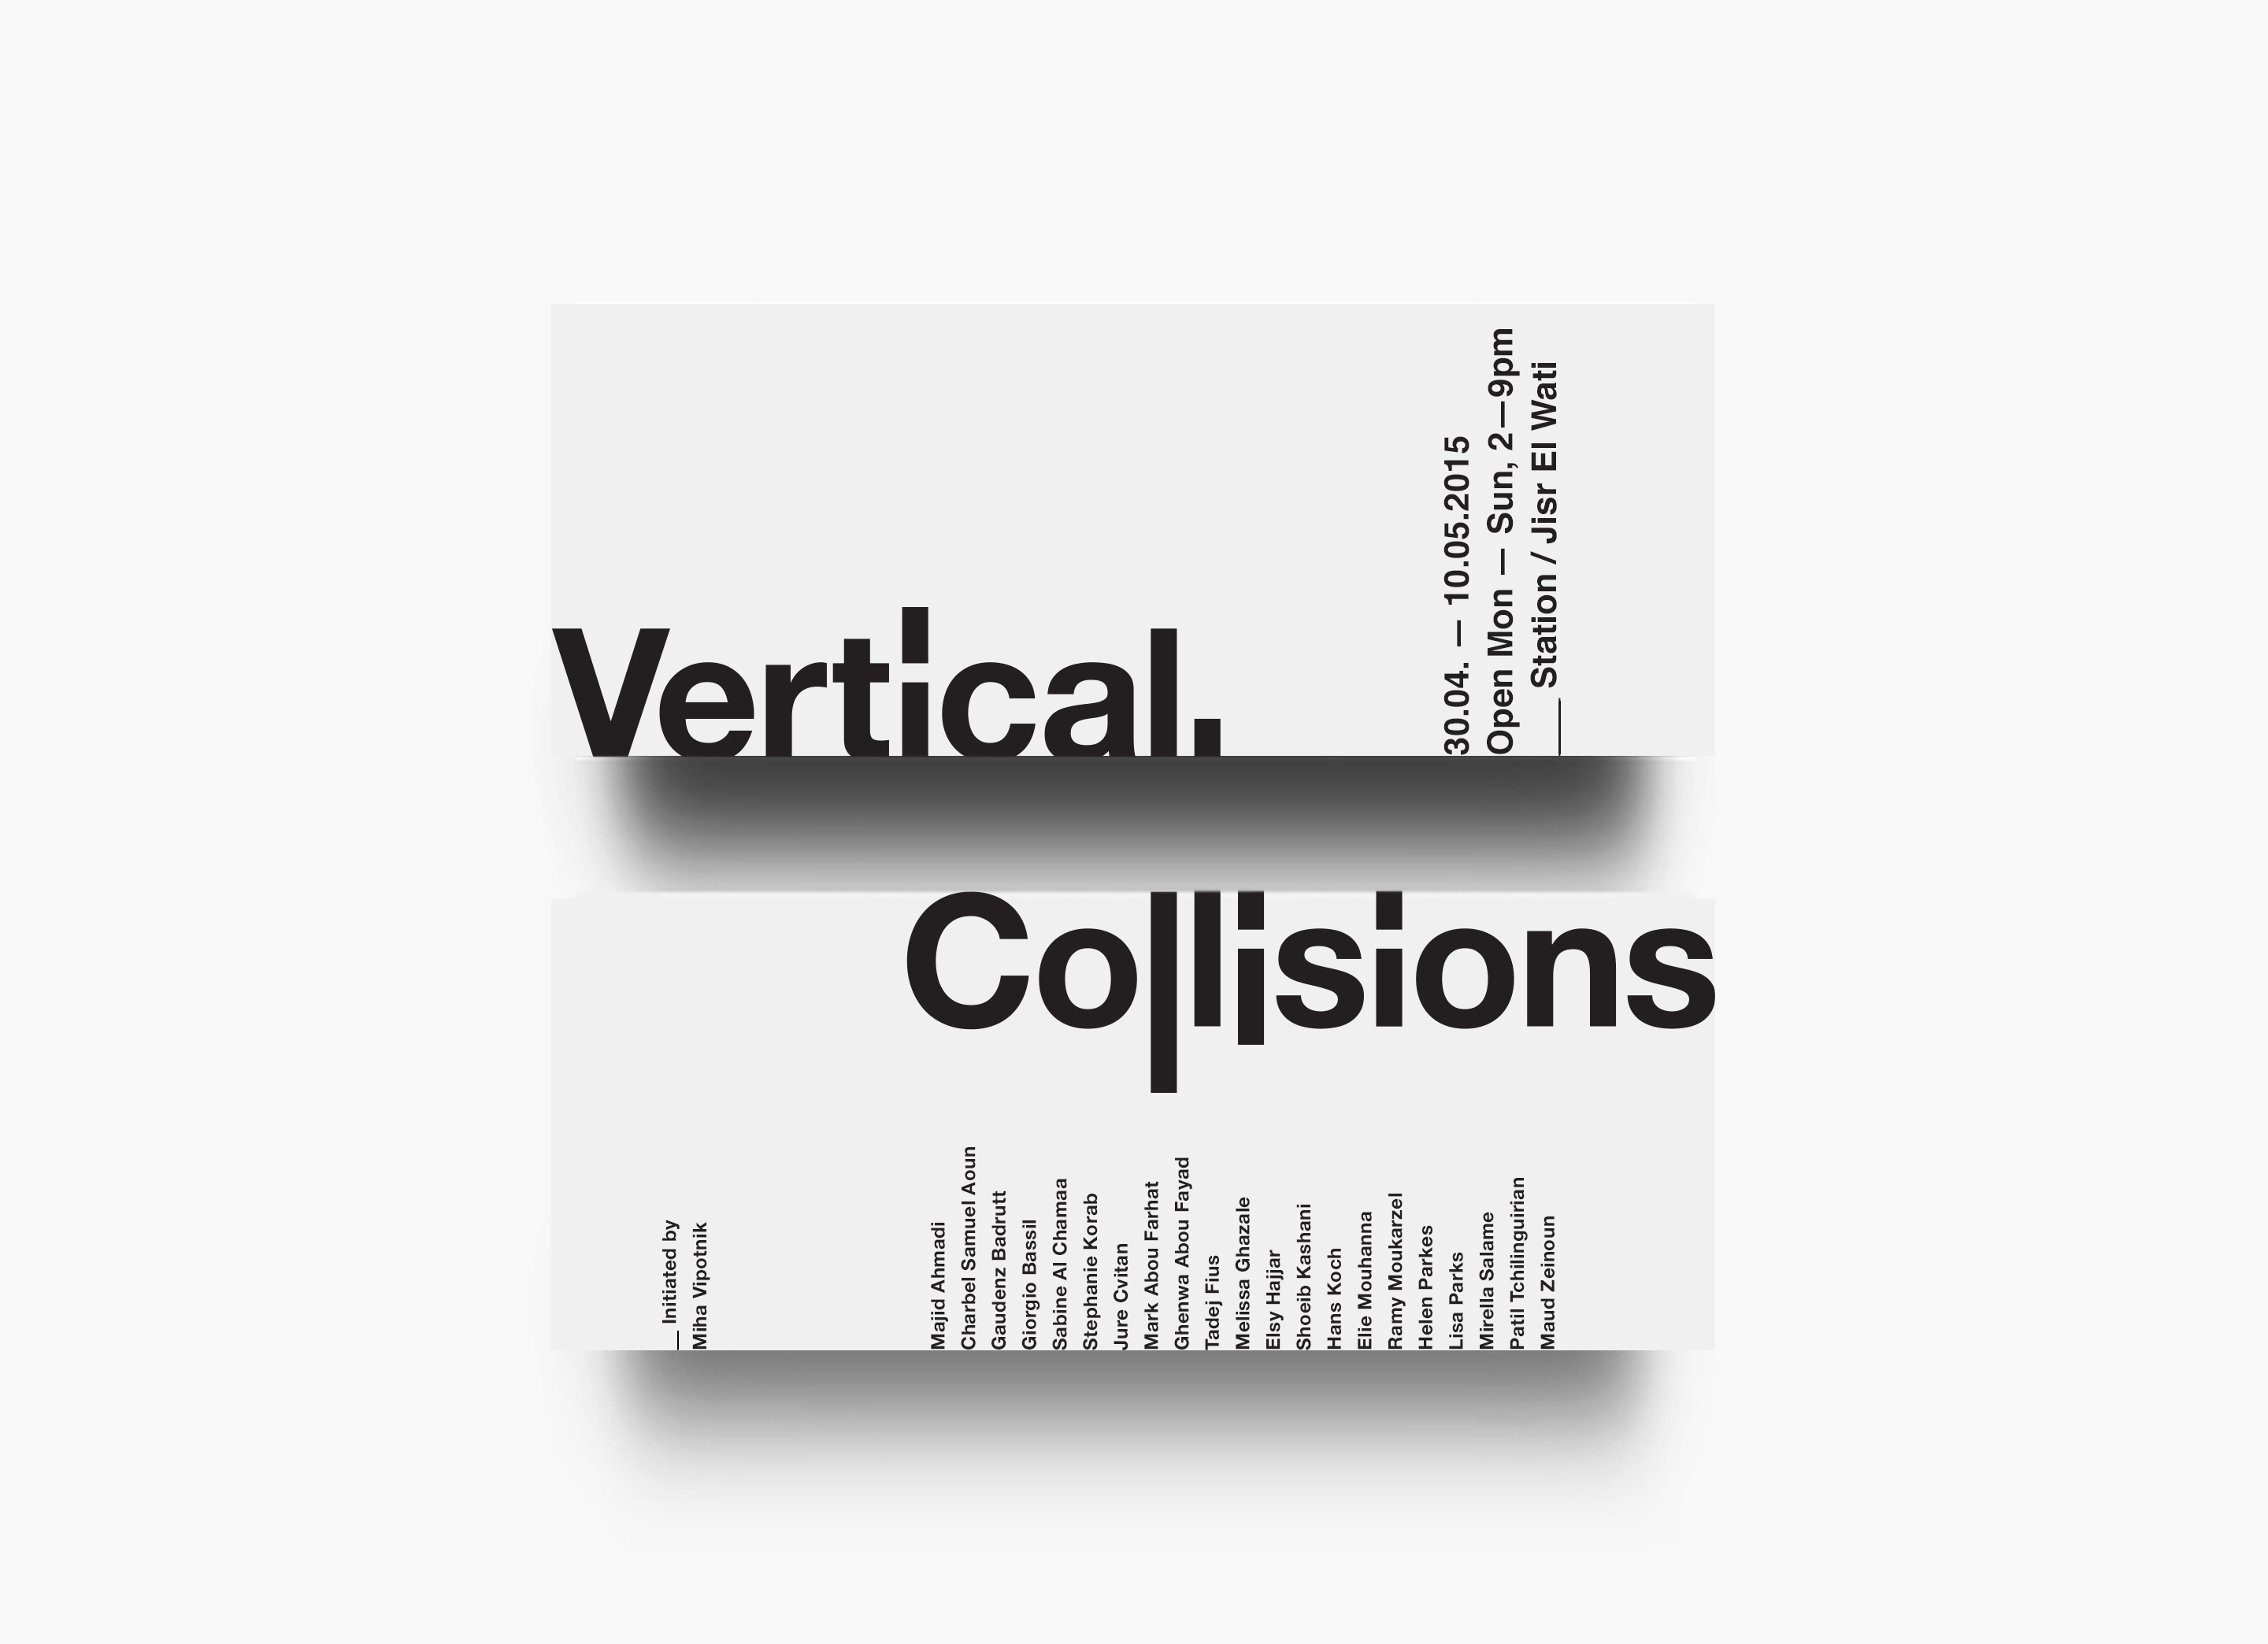 6-vertical-collisions-V2